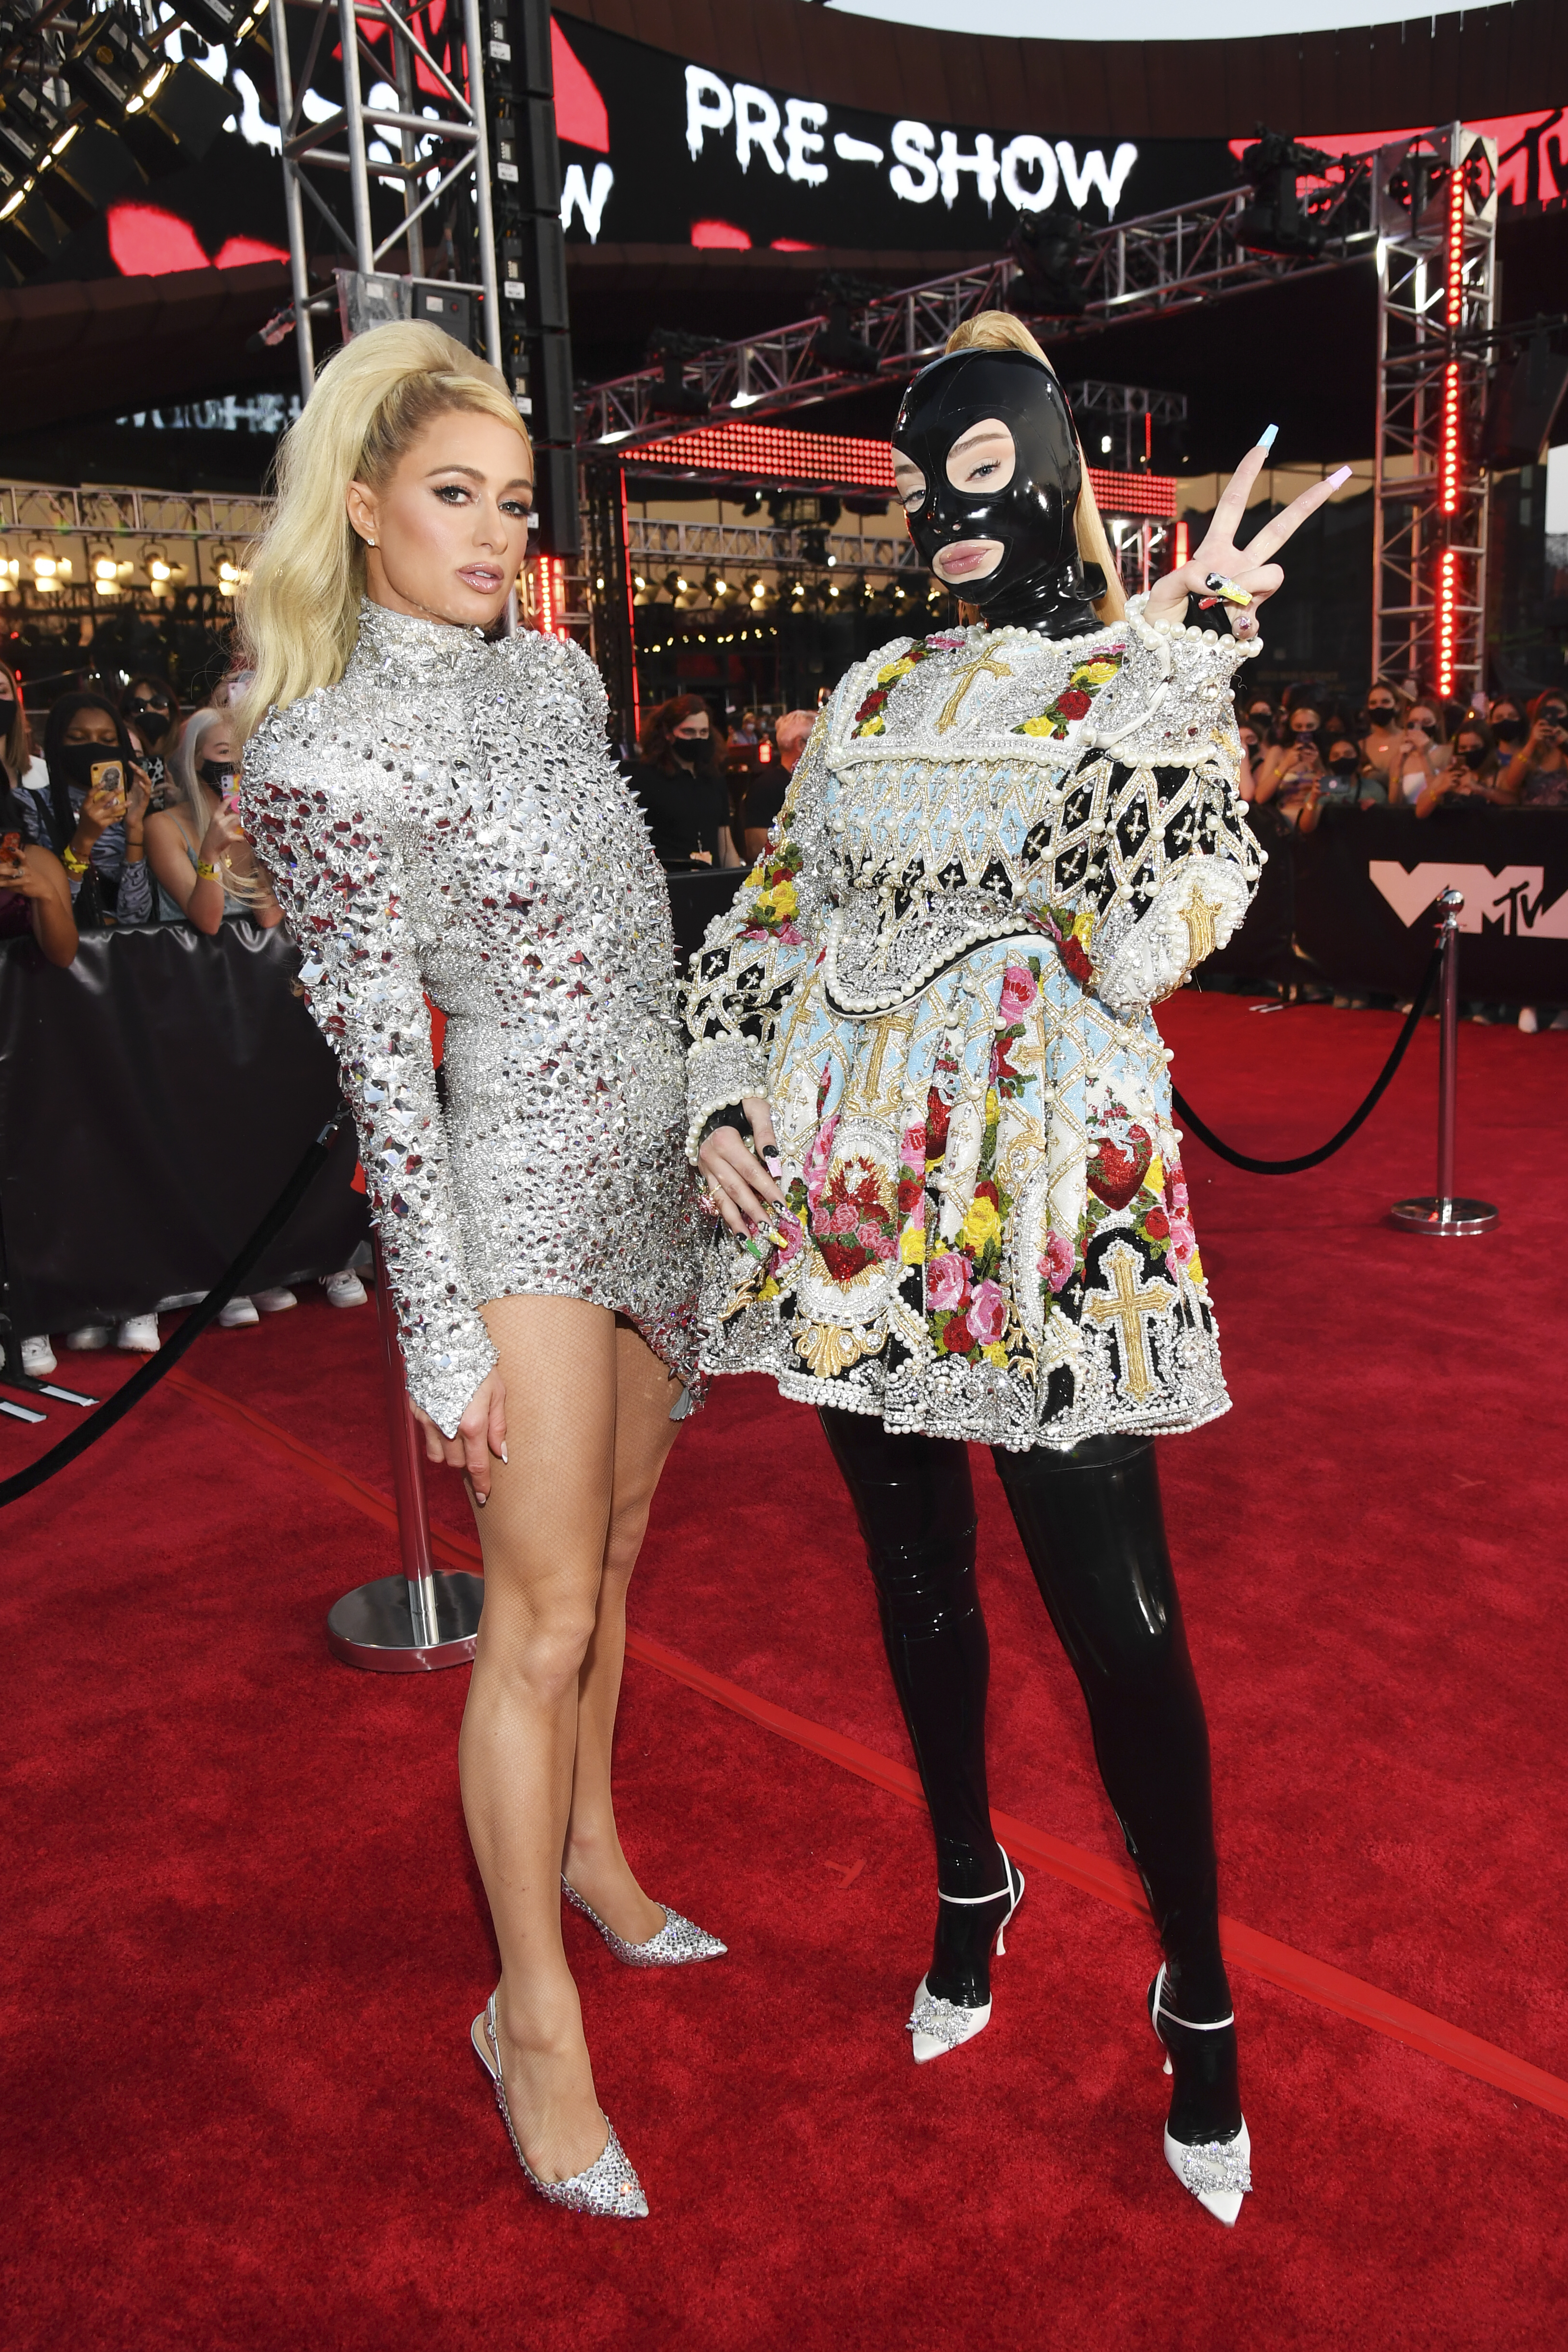 NEW YORK, NEW YORK - SEPTEMBER 12: (L-R) Paris Hilton and Kim Petras attend the 2021 MTV Video Music Awards at Barclays Center on September 12, 2021 in the Brooklyn borough of New York City. (Photo by Kevin Mazur/MTV VMAs 2021/Getty Images for MTV/ ViacomCBS)